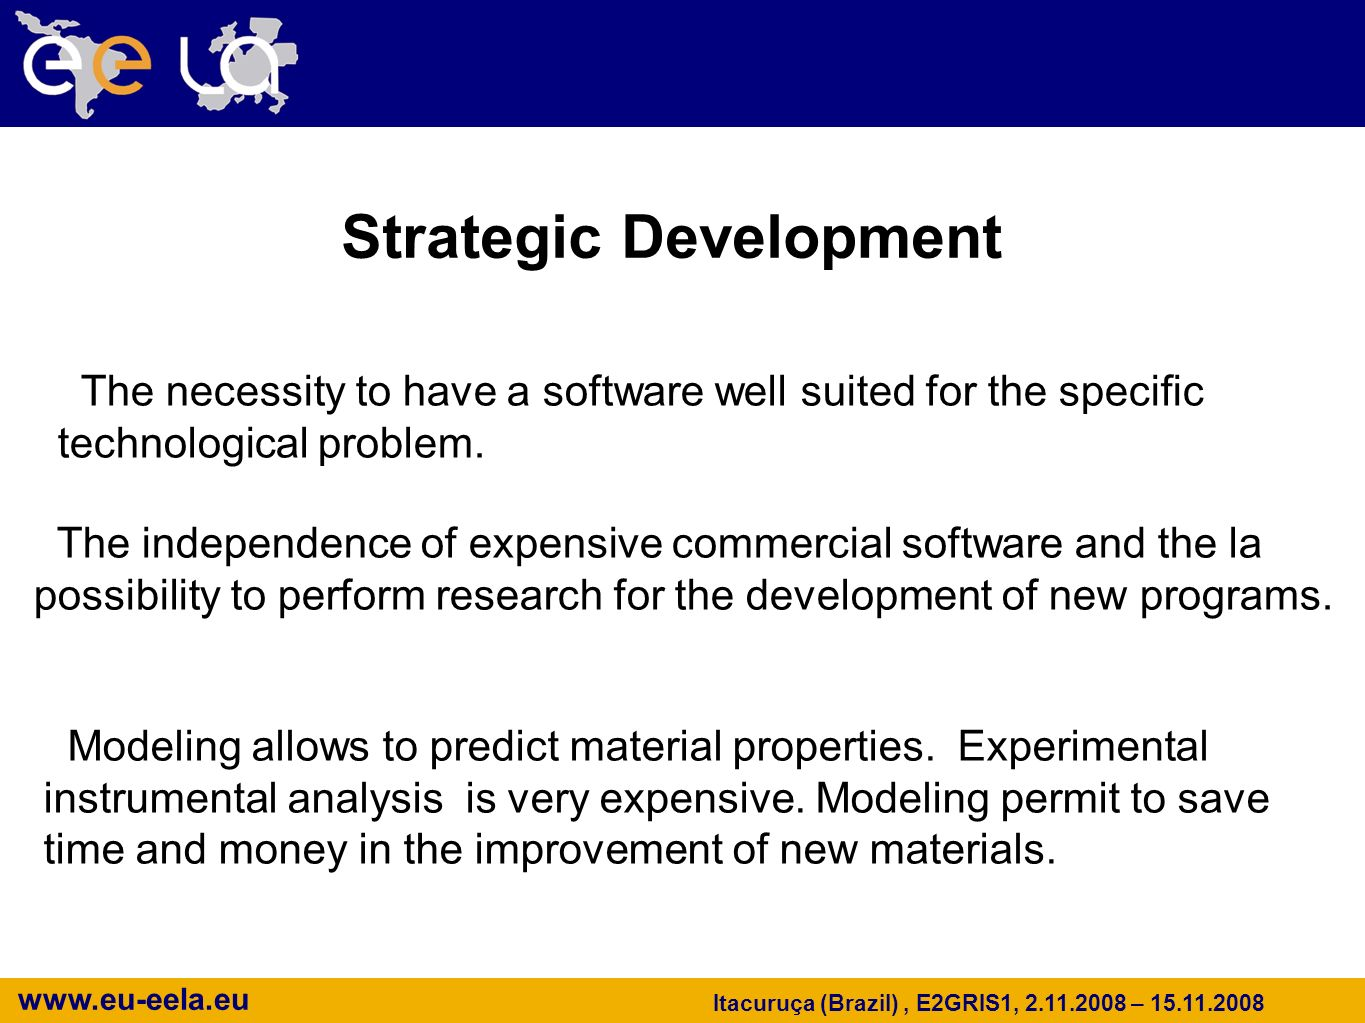 www.eu-eela.eu Itacuruça (Brazil), E2GRIS1, 2.11.2008 – 15.11.2008 Strategic Development The necessity to have a software well suited for the specific